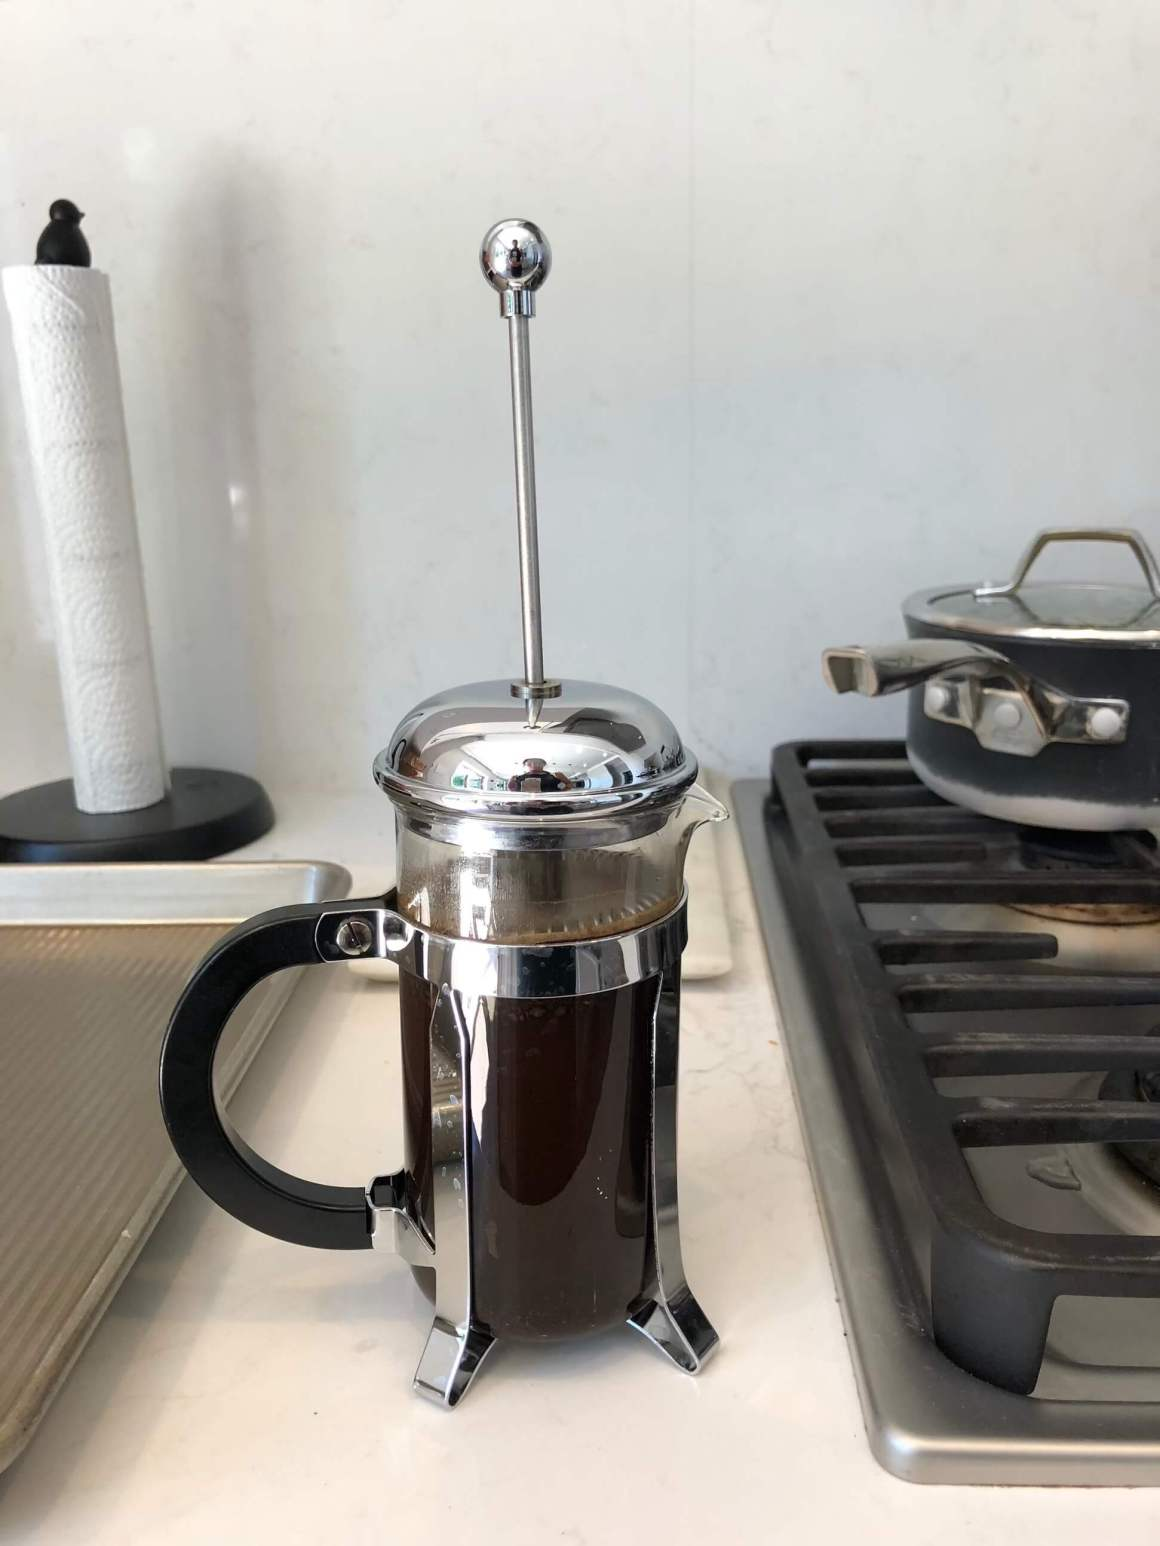 French press full of coffee